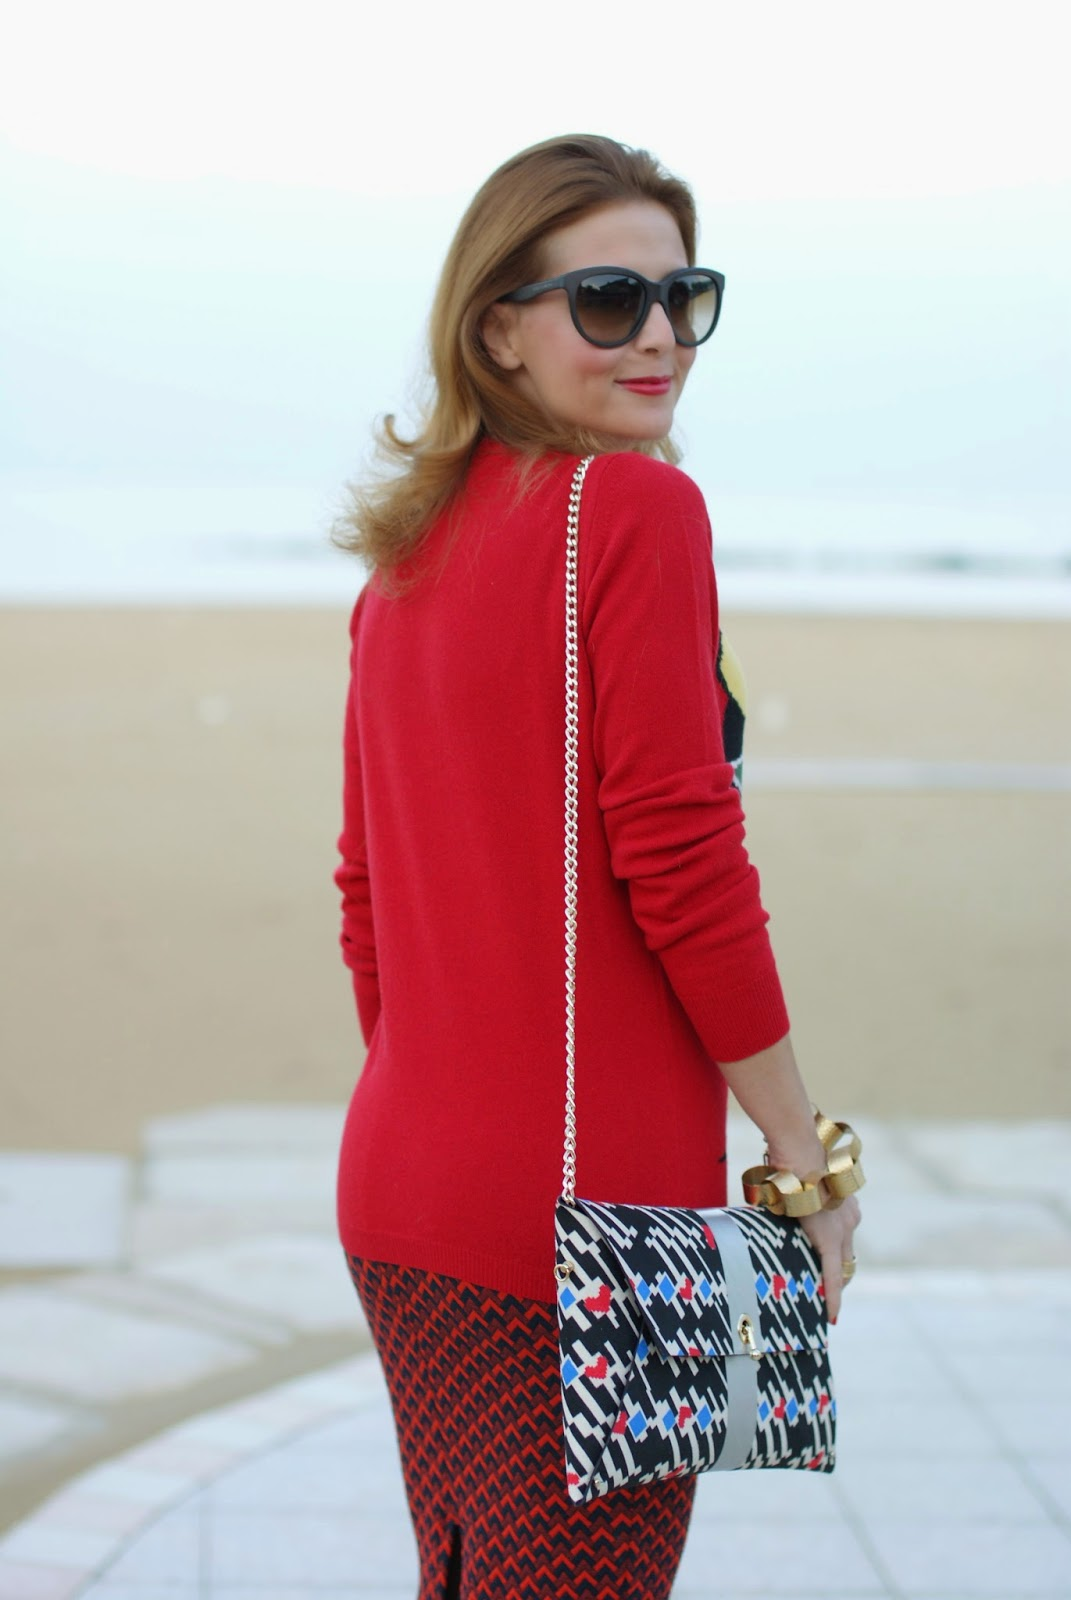 Maglione Moschino con faccia, Ohmai borsa Louise, Fashion and Cookies, fashion blogger